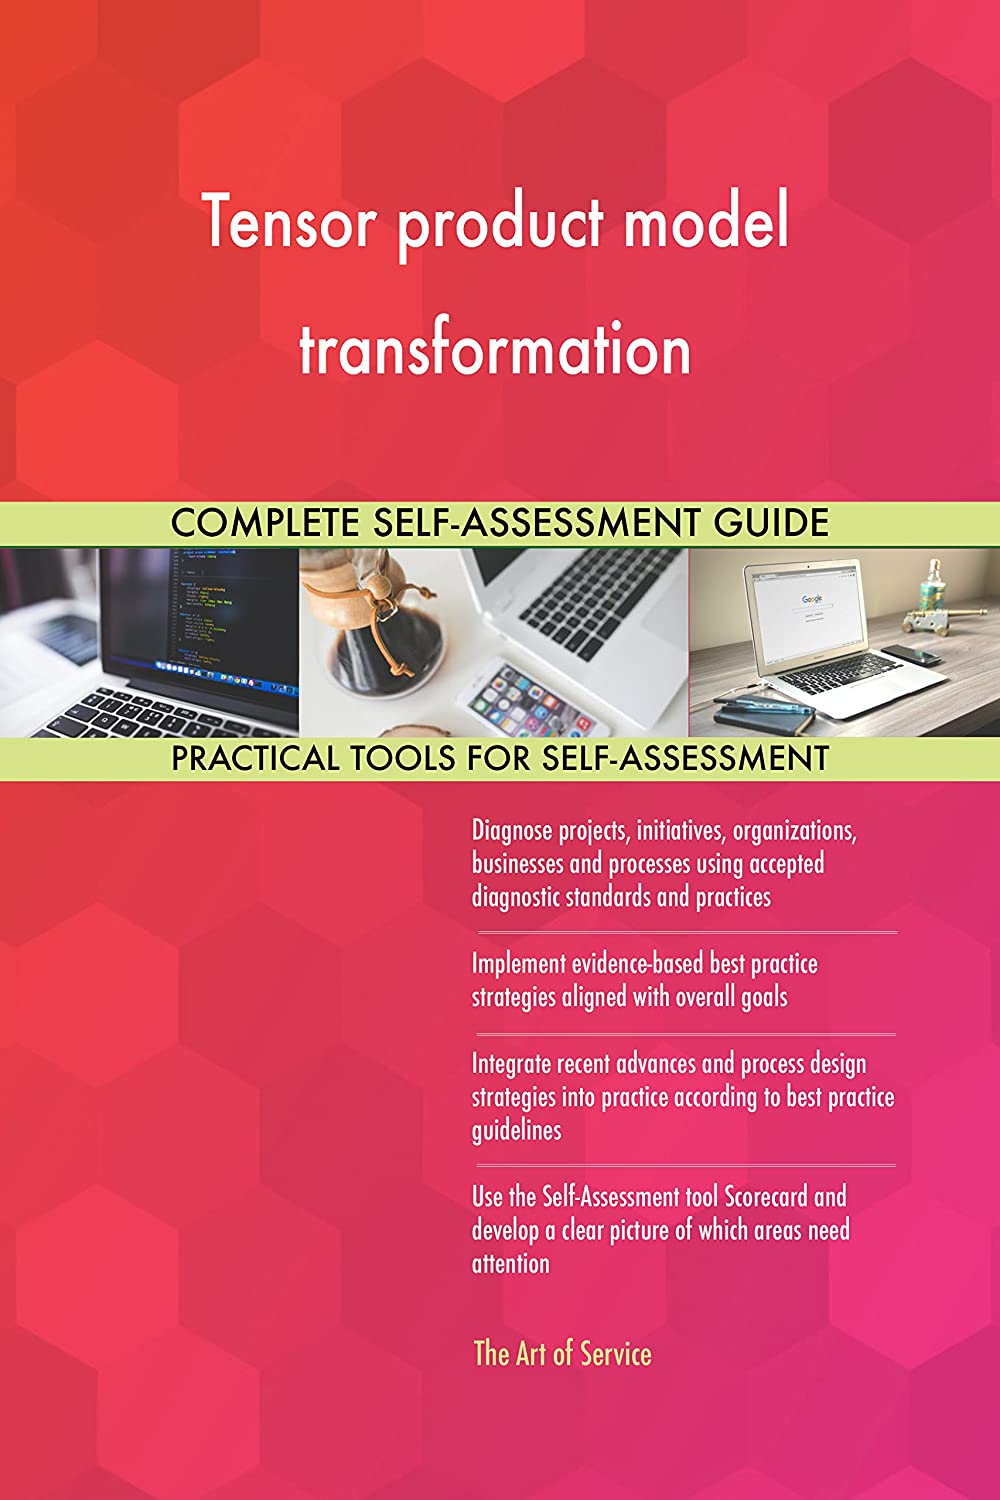 Tensor product model transformation All-Inclusive Self-Assessment - More than 670 Spreadsheet Success Criteria, Instant Visual Insights, Comprehensive Spreadsheet 670 Dashboard, Auto-Prioritized for Quick Results d1f42b